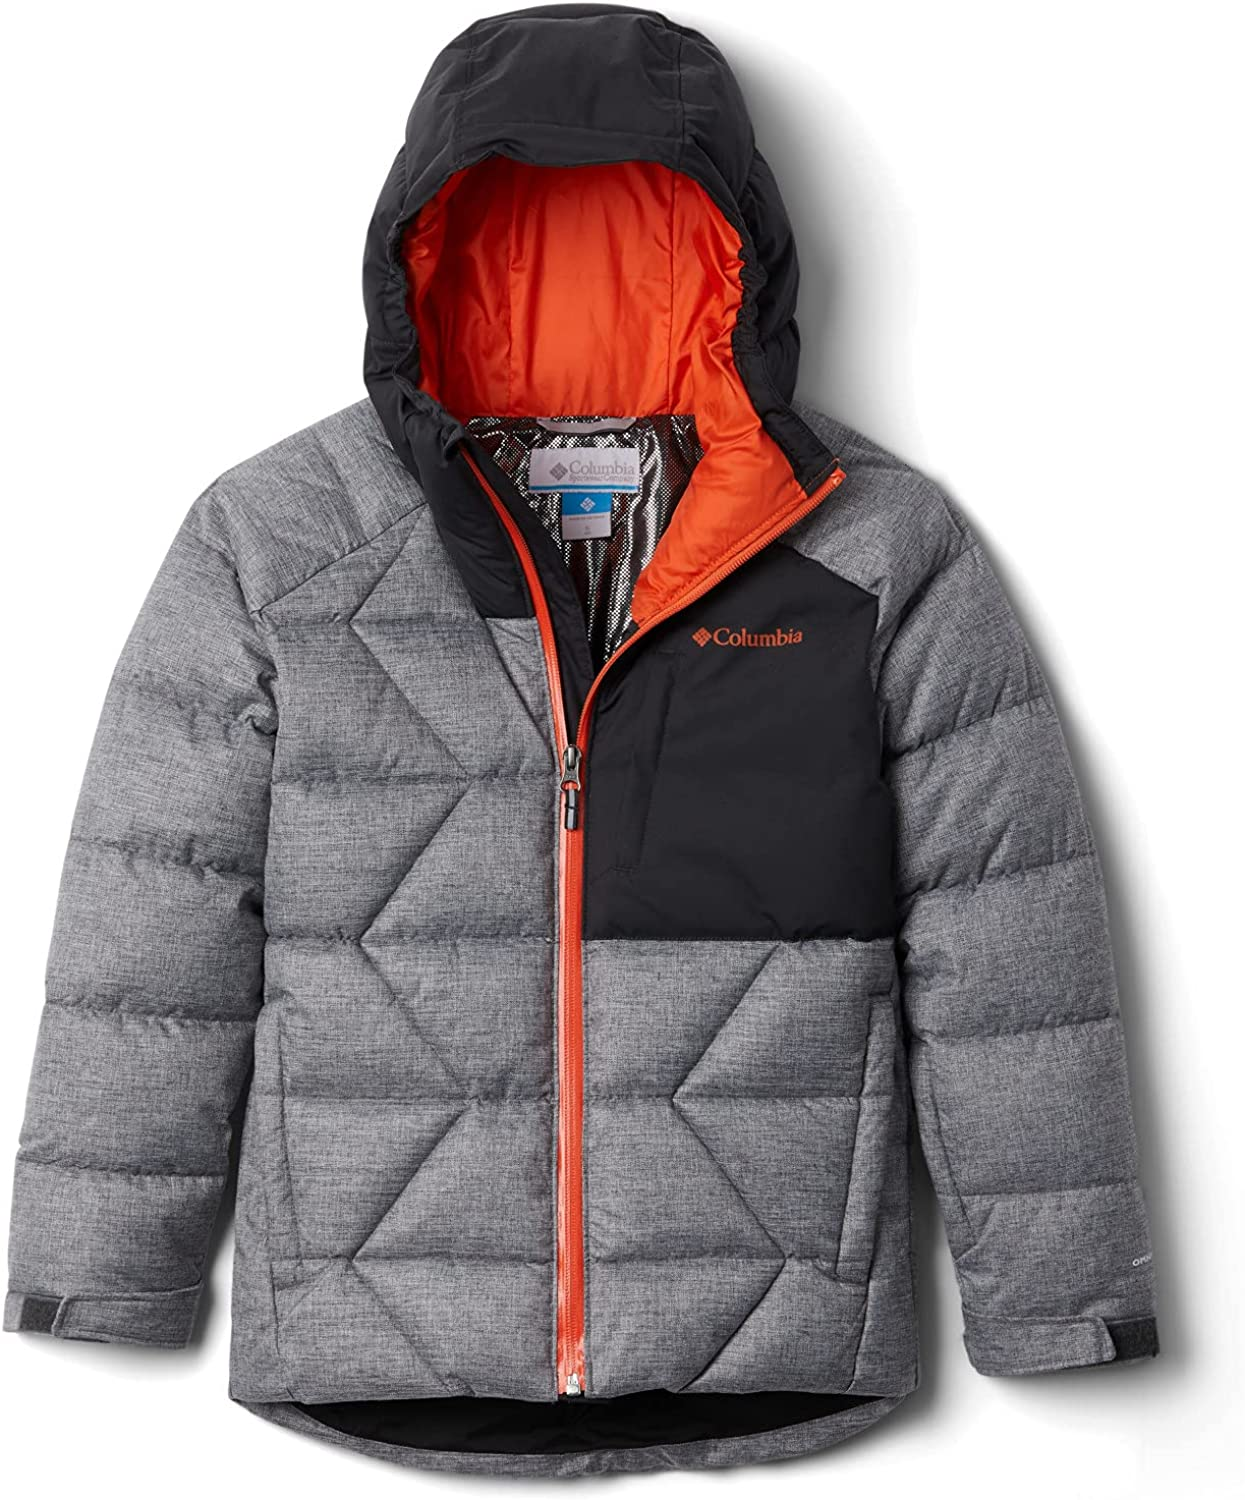 Popular product Columbia Boys Winter Jacket New Orleans Mall Powder Quilted